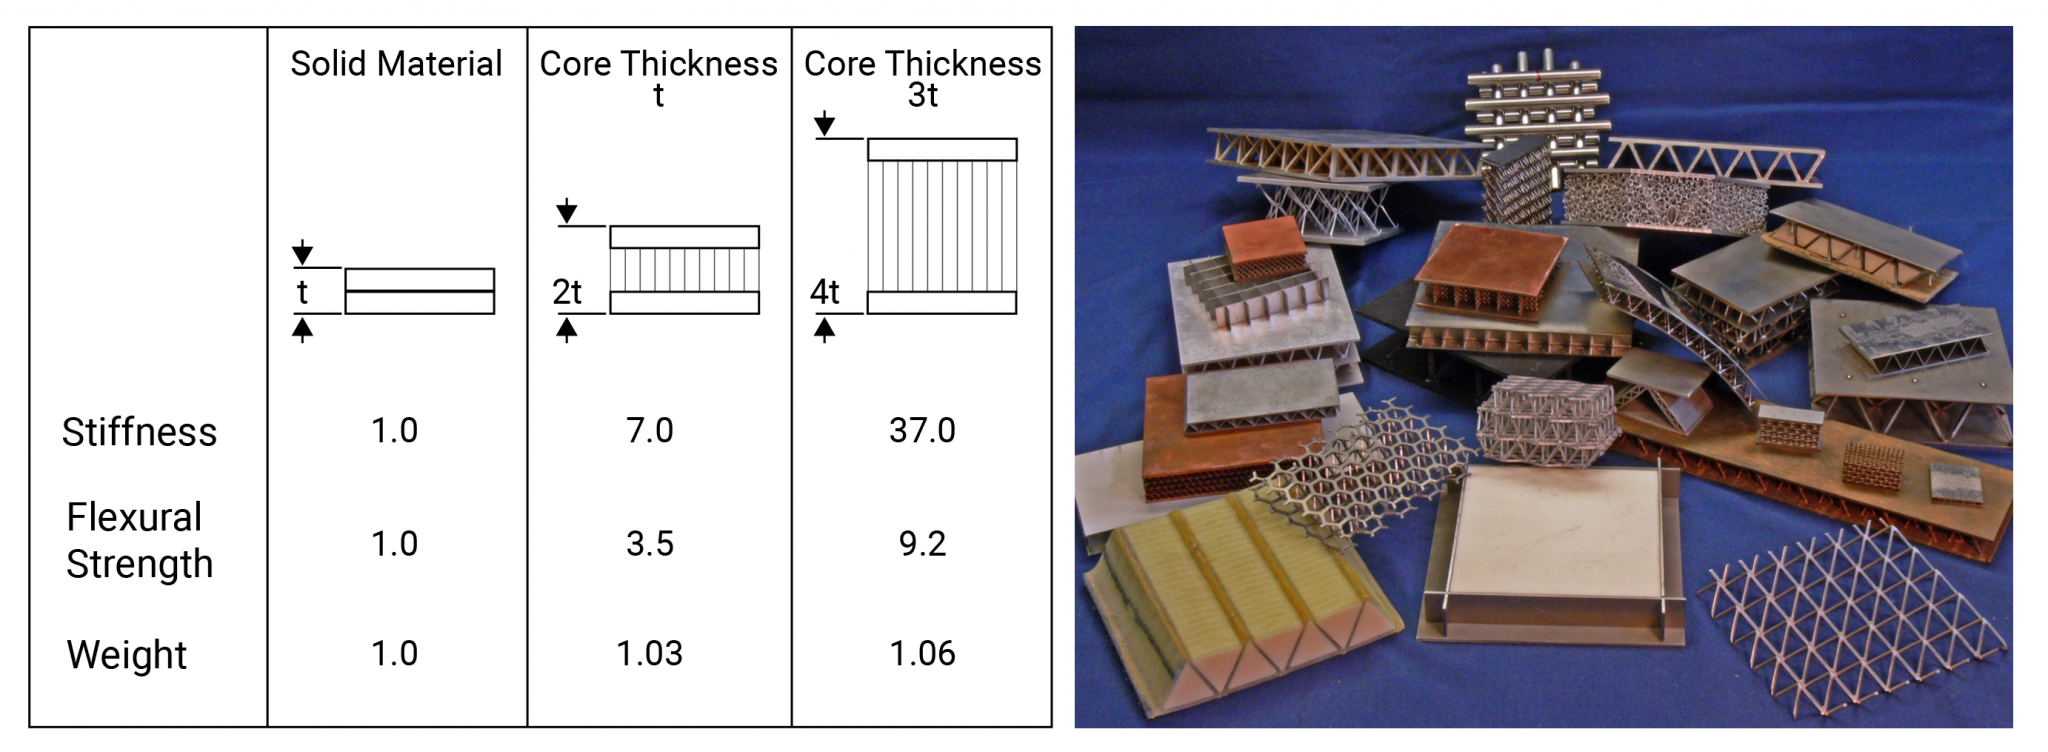 Bending stiffness and strength benefits of lightweighting with sandwich structures, with a few examples shown.